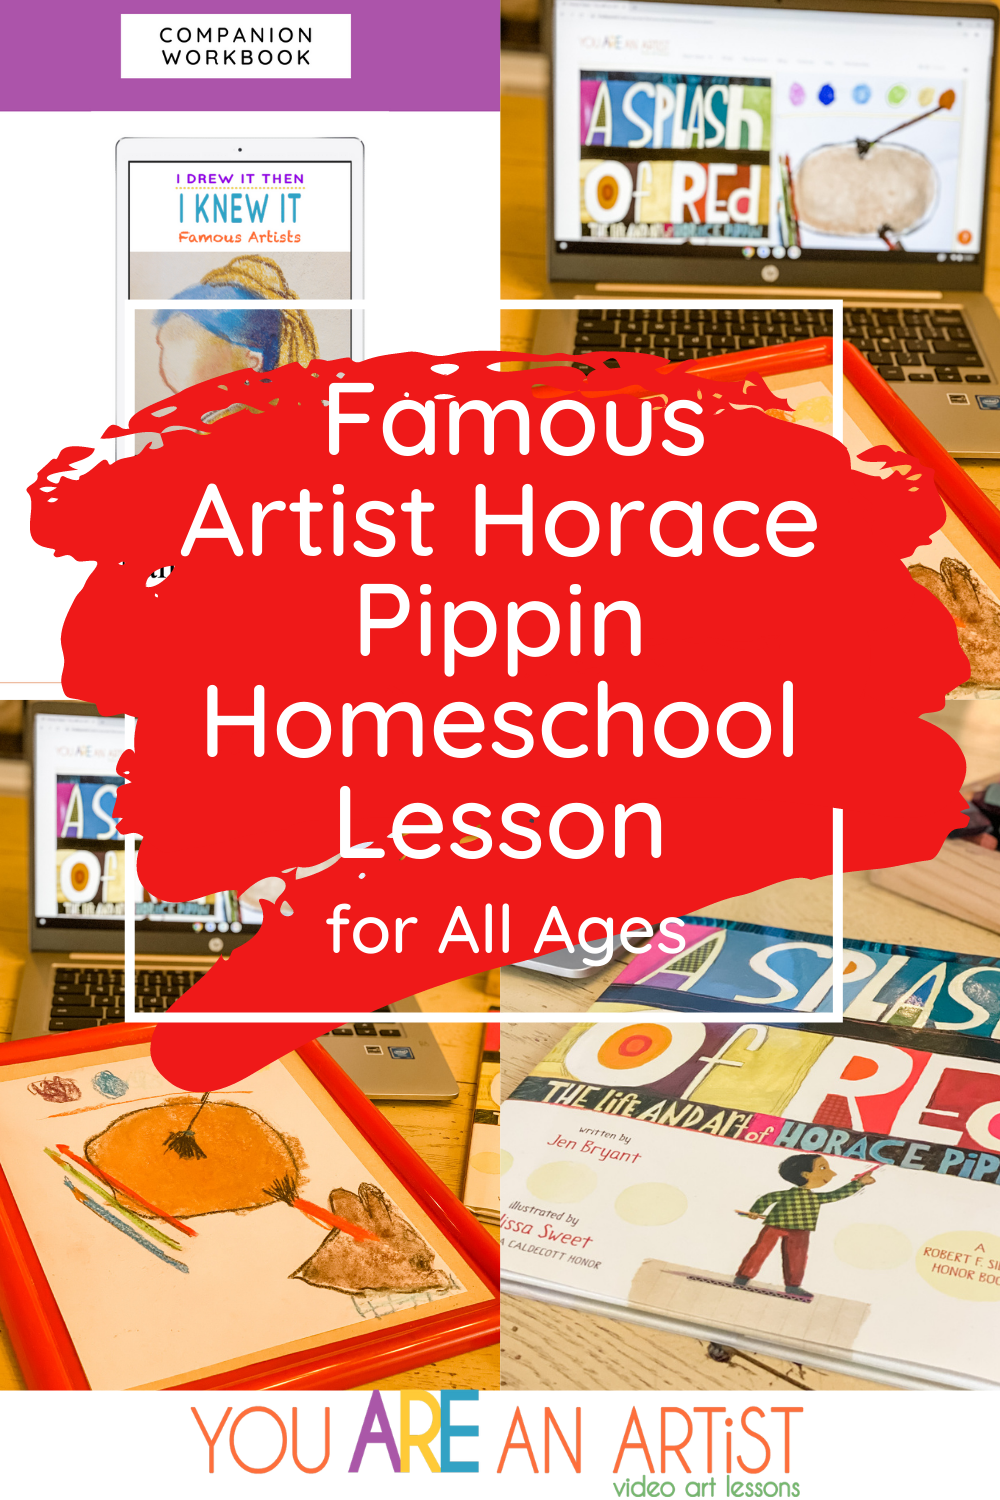 Enjoy homeschool art appreciation with famous artists! Our Horace Pippin homeschool art lesson is great for any age. #horacepippin #famousartists #homeschoolart #onlineartlessons